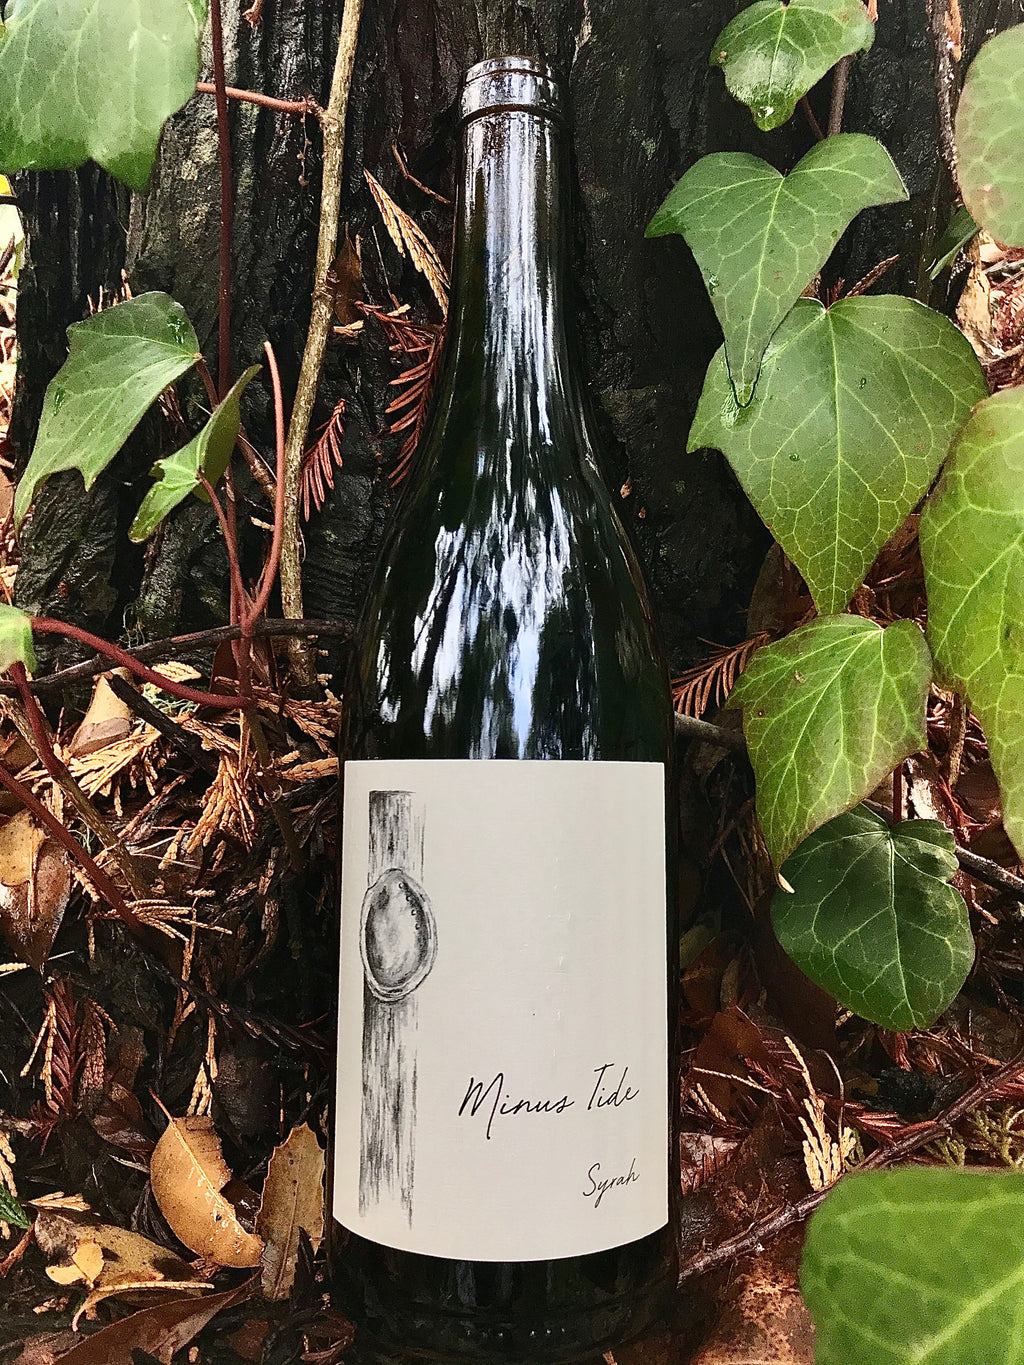 2018 Minus Tide Valenti Vineyard Syrah